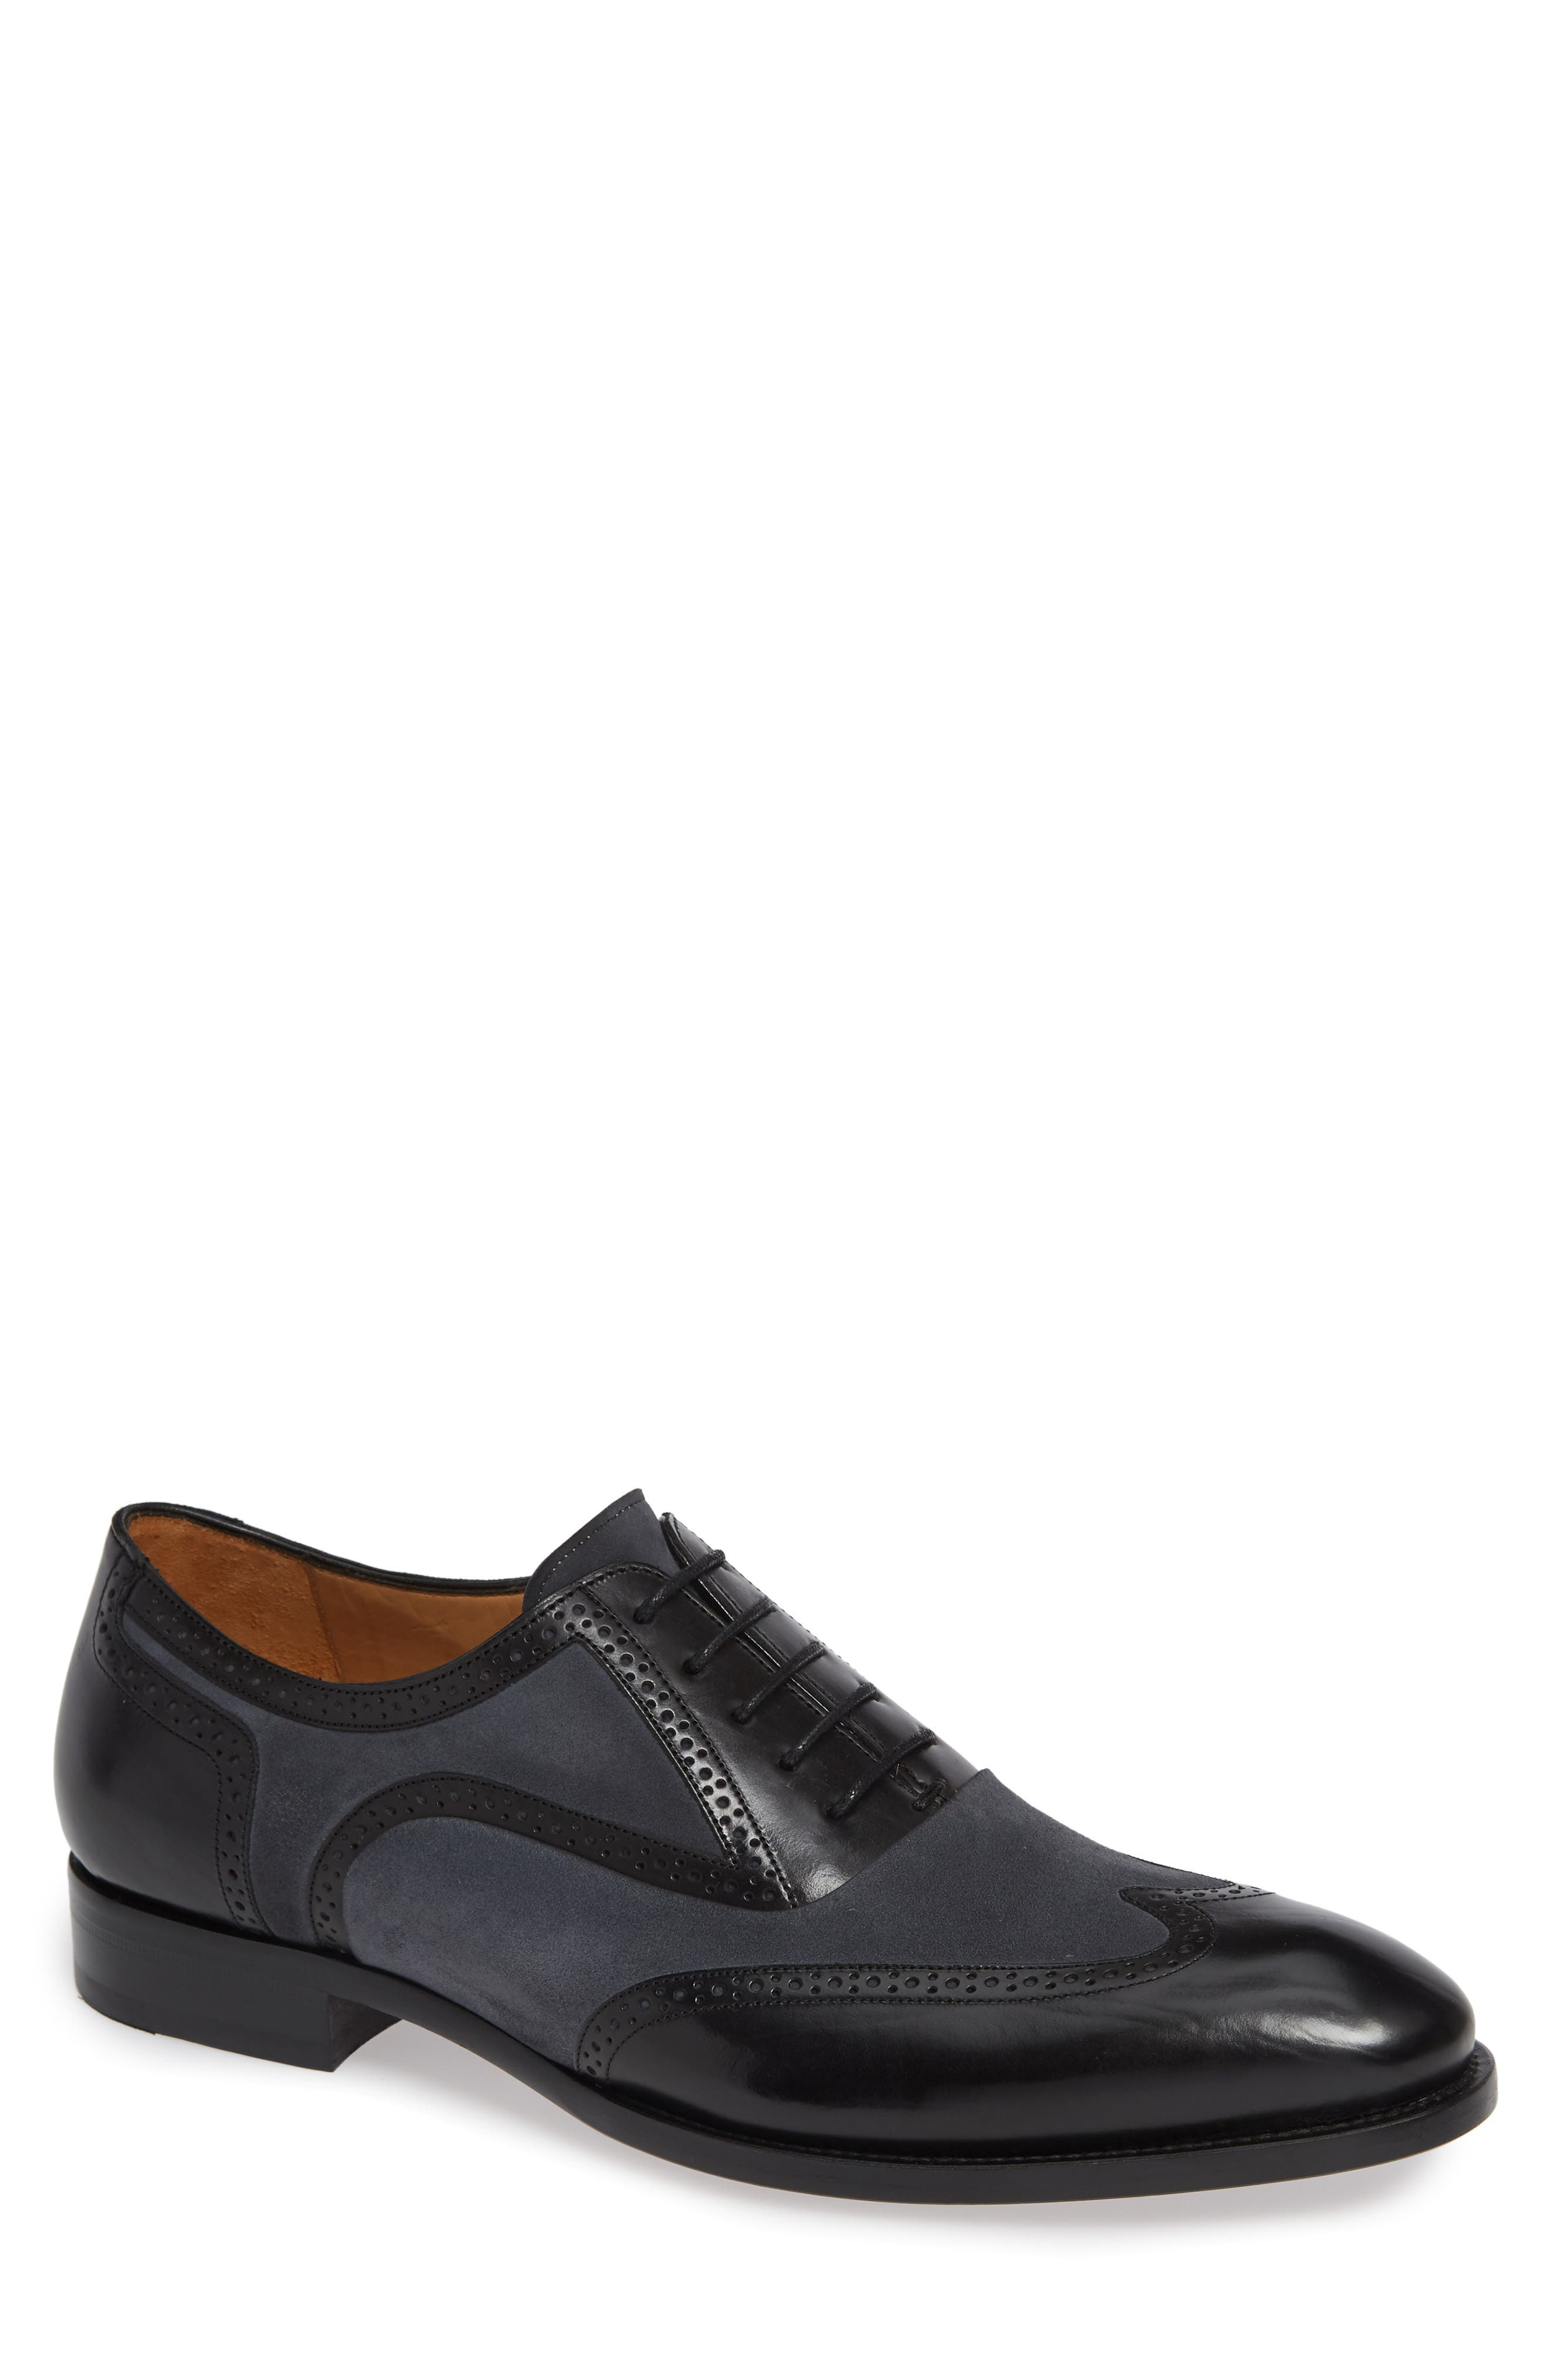 Mezlan Cantone Wing Tip Lace-Up Oxford- Black